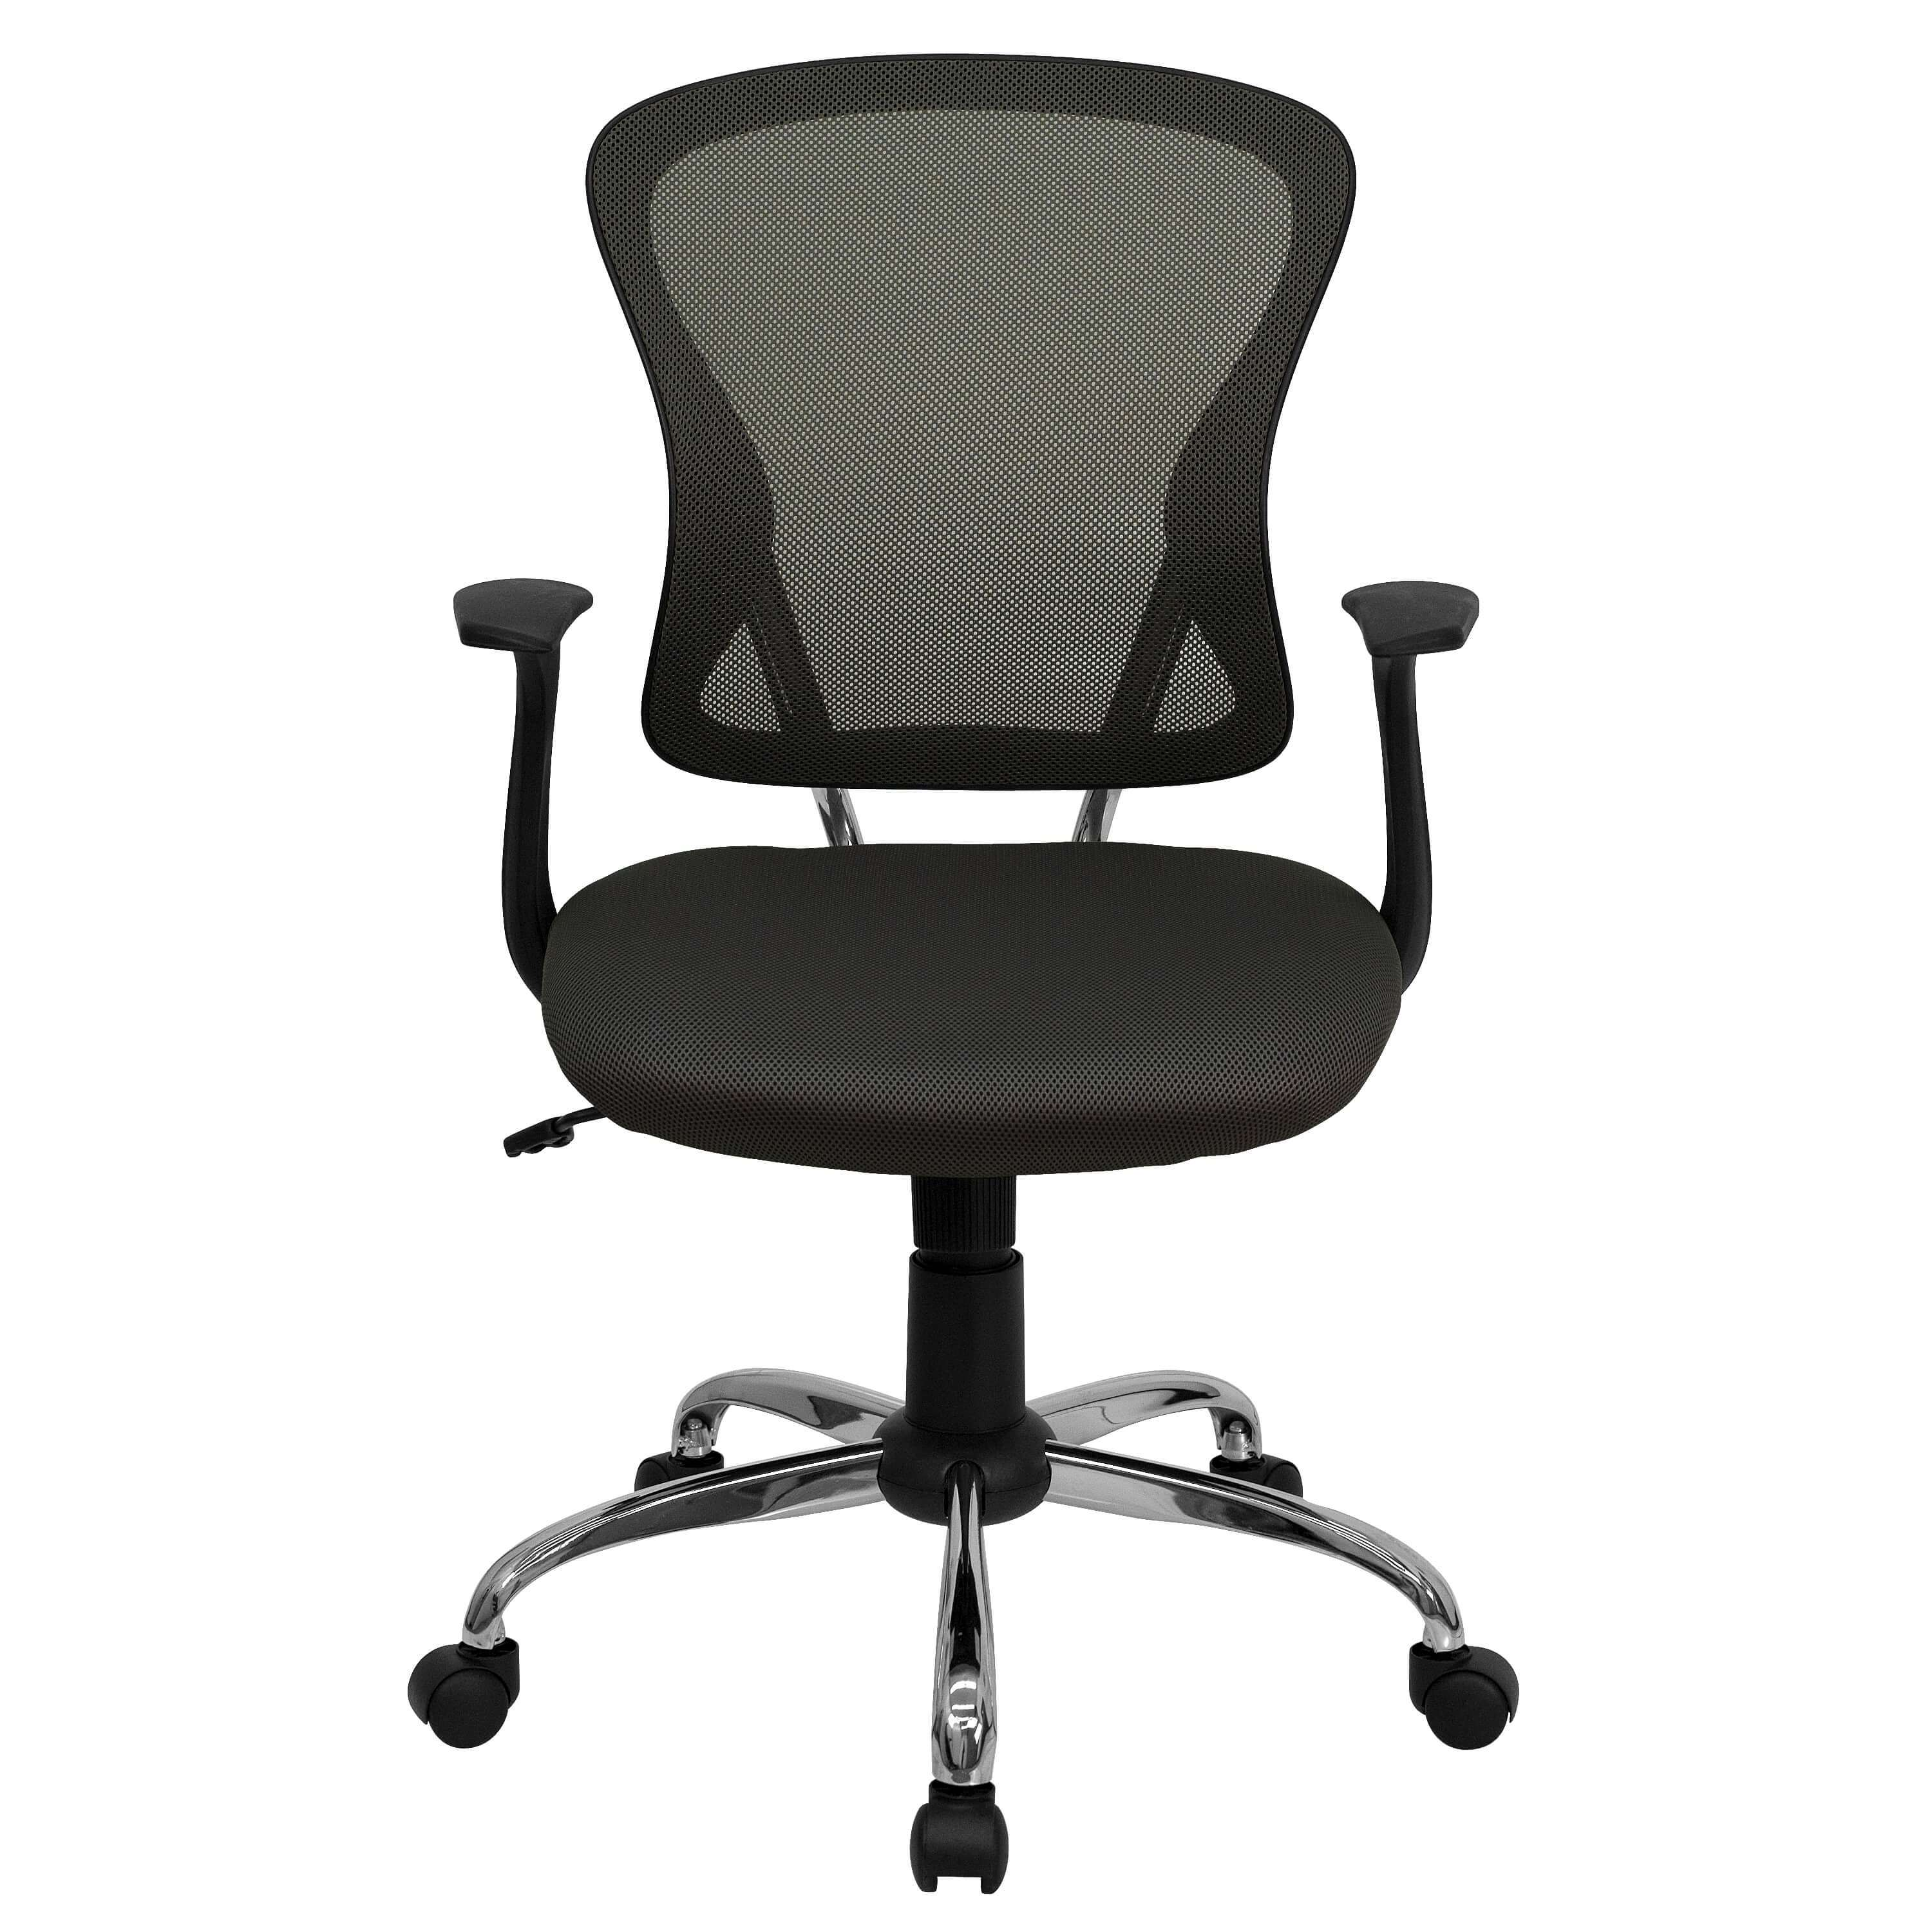 Colorful desk chairs CUB H 8369F DK GY GG FLA